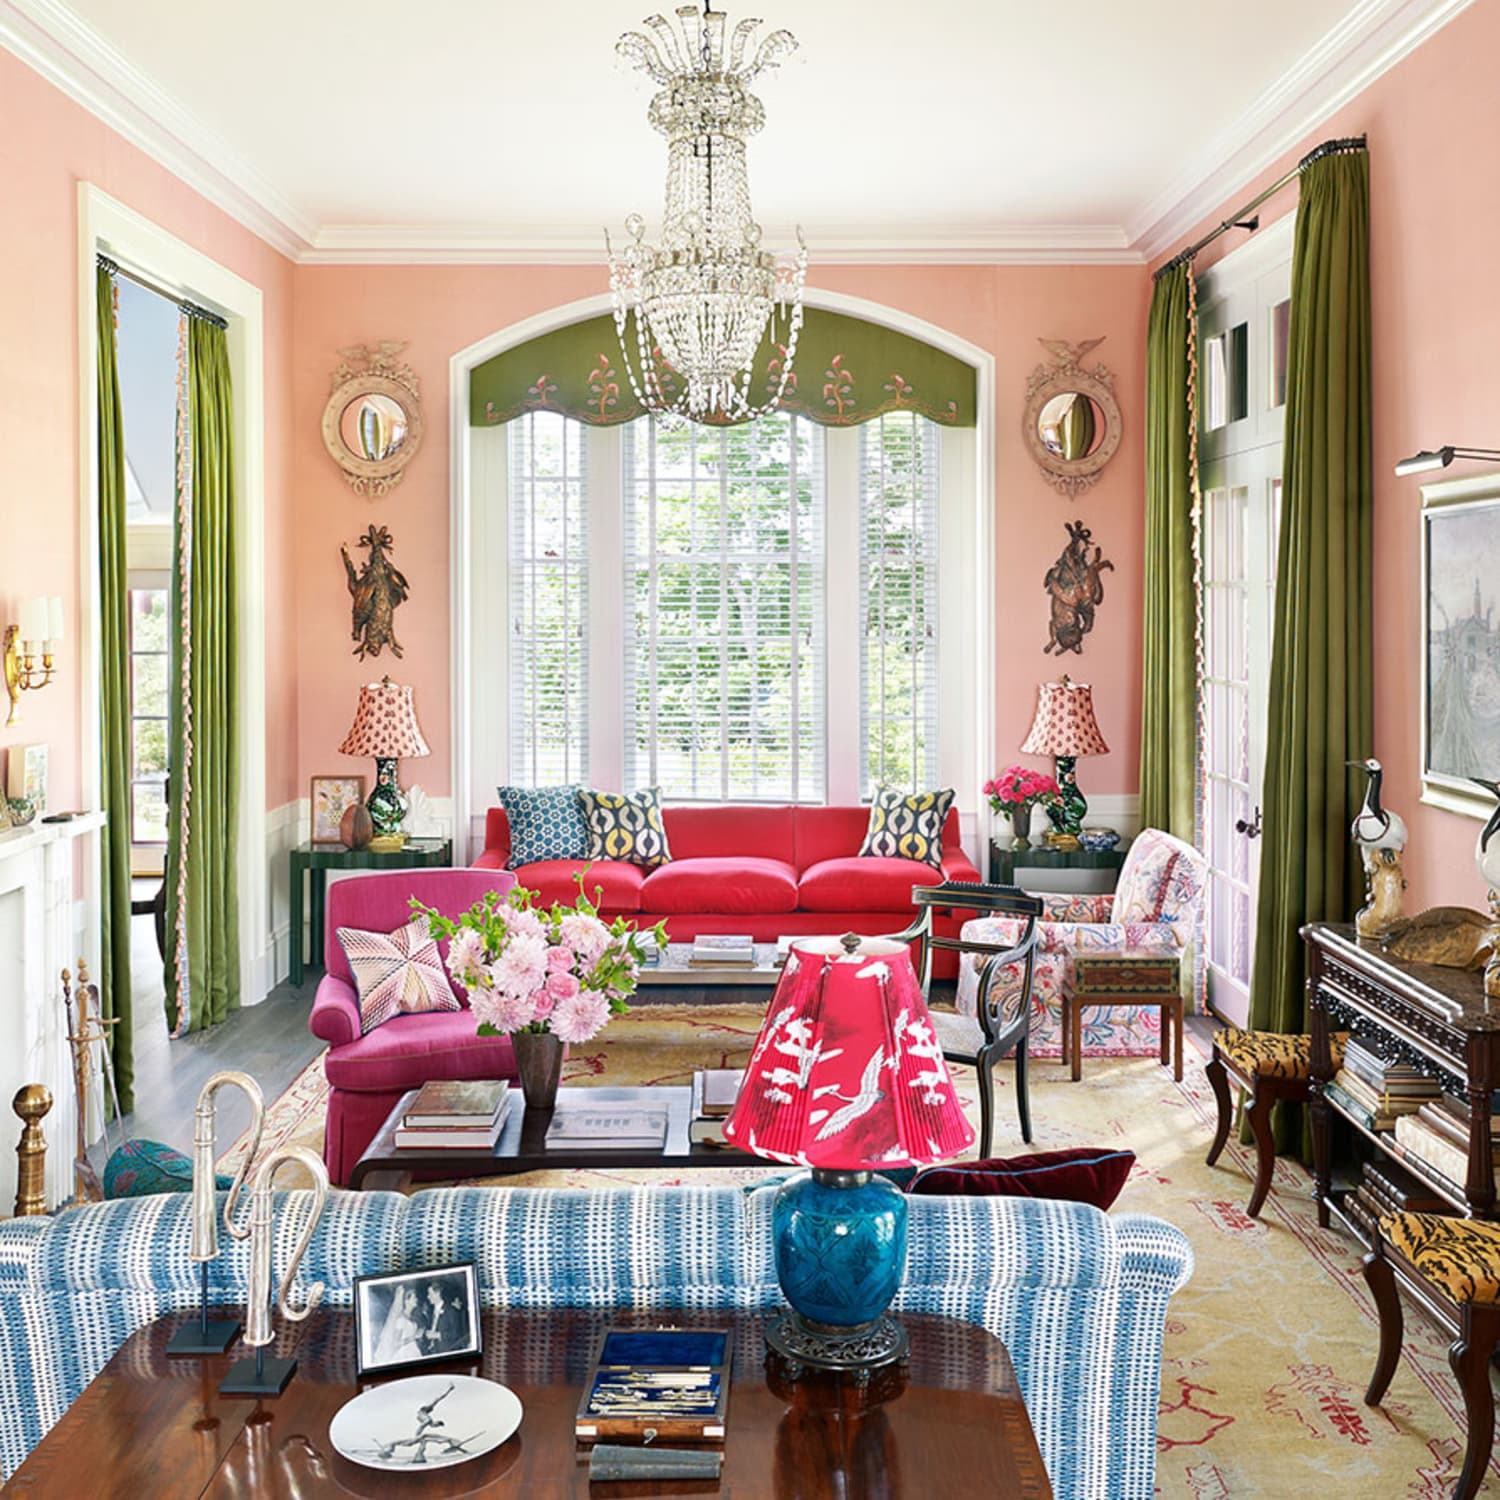 8 Ways Your Stylish Grandma Would Tell You To Decorate Your Home Apartment Therapy